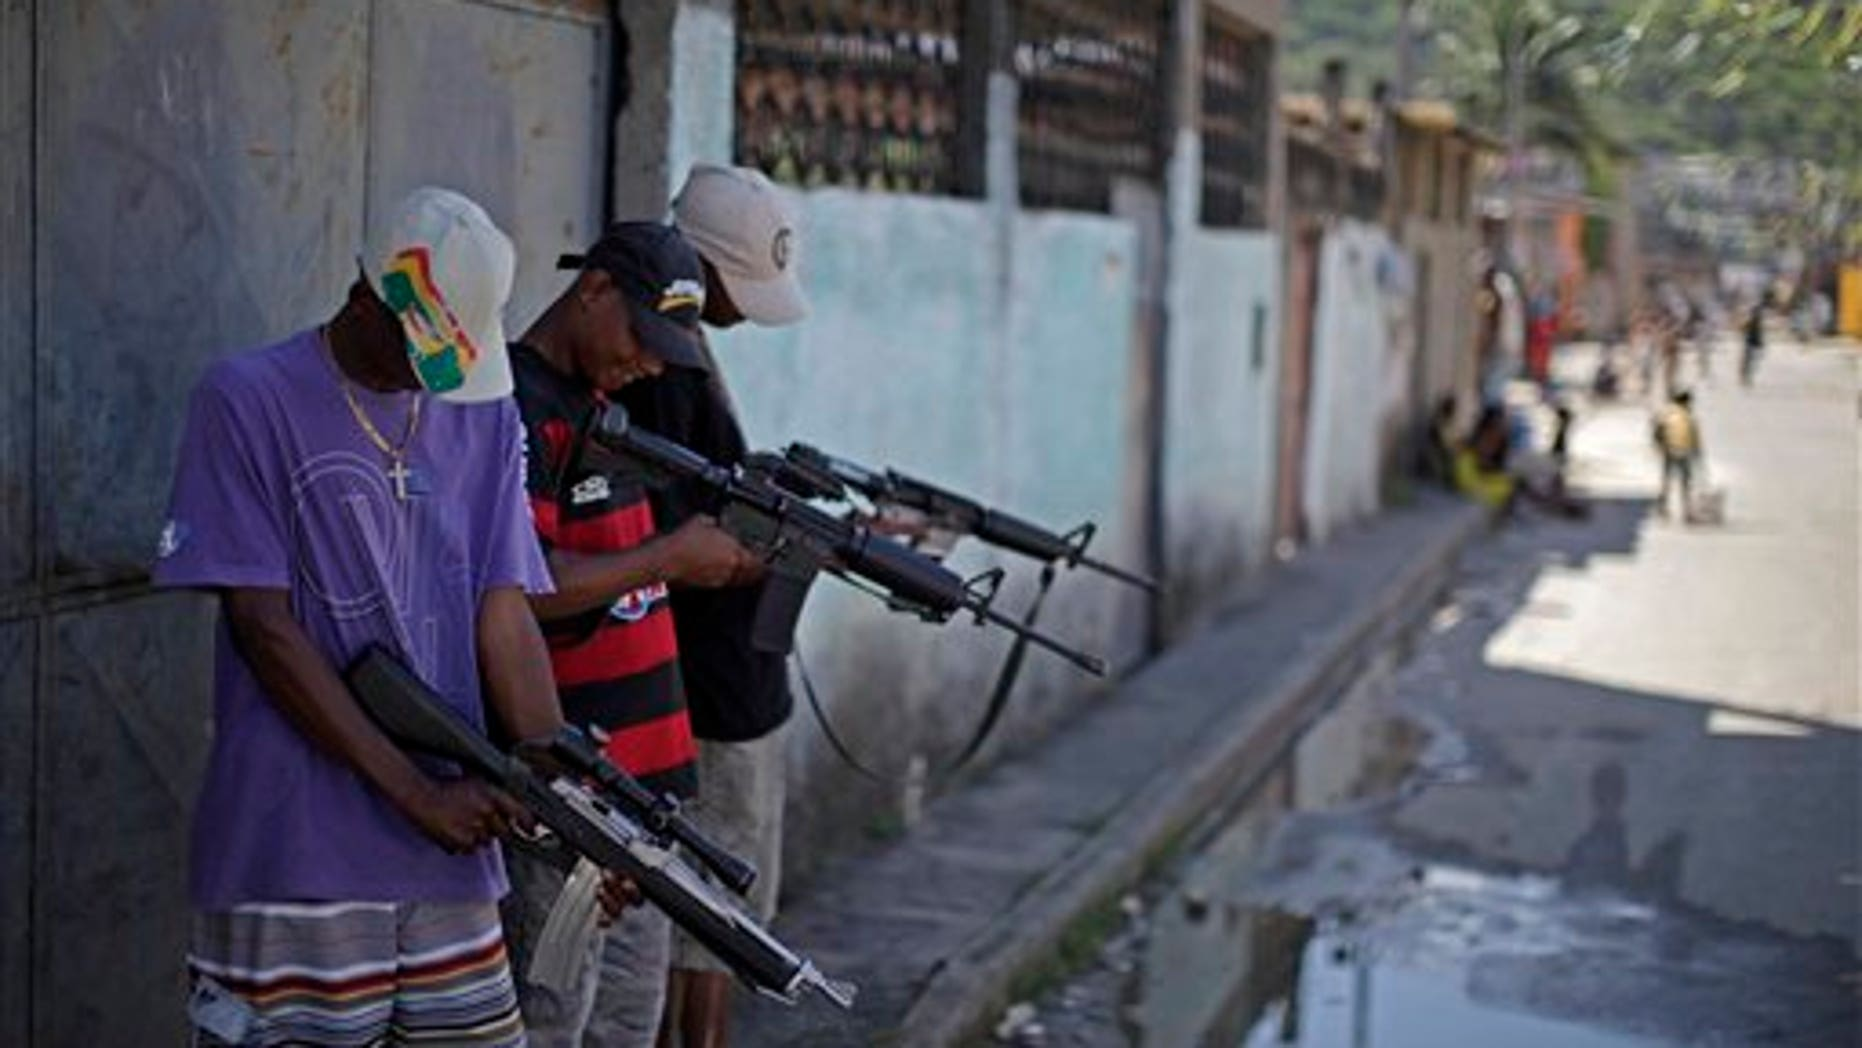 Nov. 27: Alleged drug traffickers who did not want to identify themselves, hold their weapons while posing for a photo at a slum in western Rio de Janeiro, Brazil.